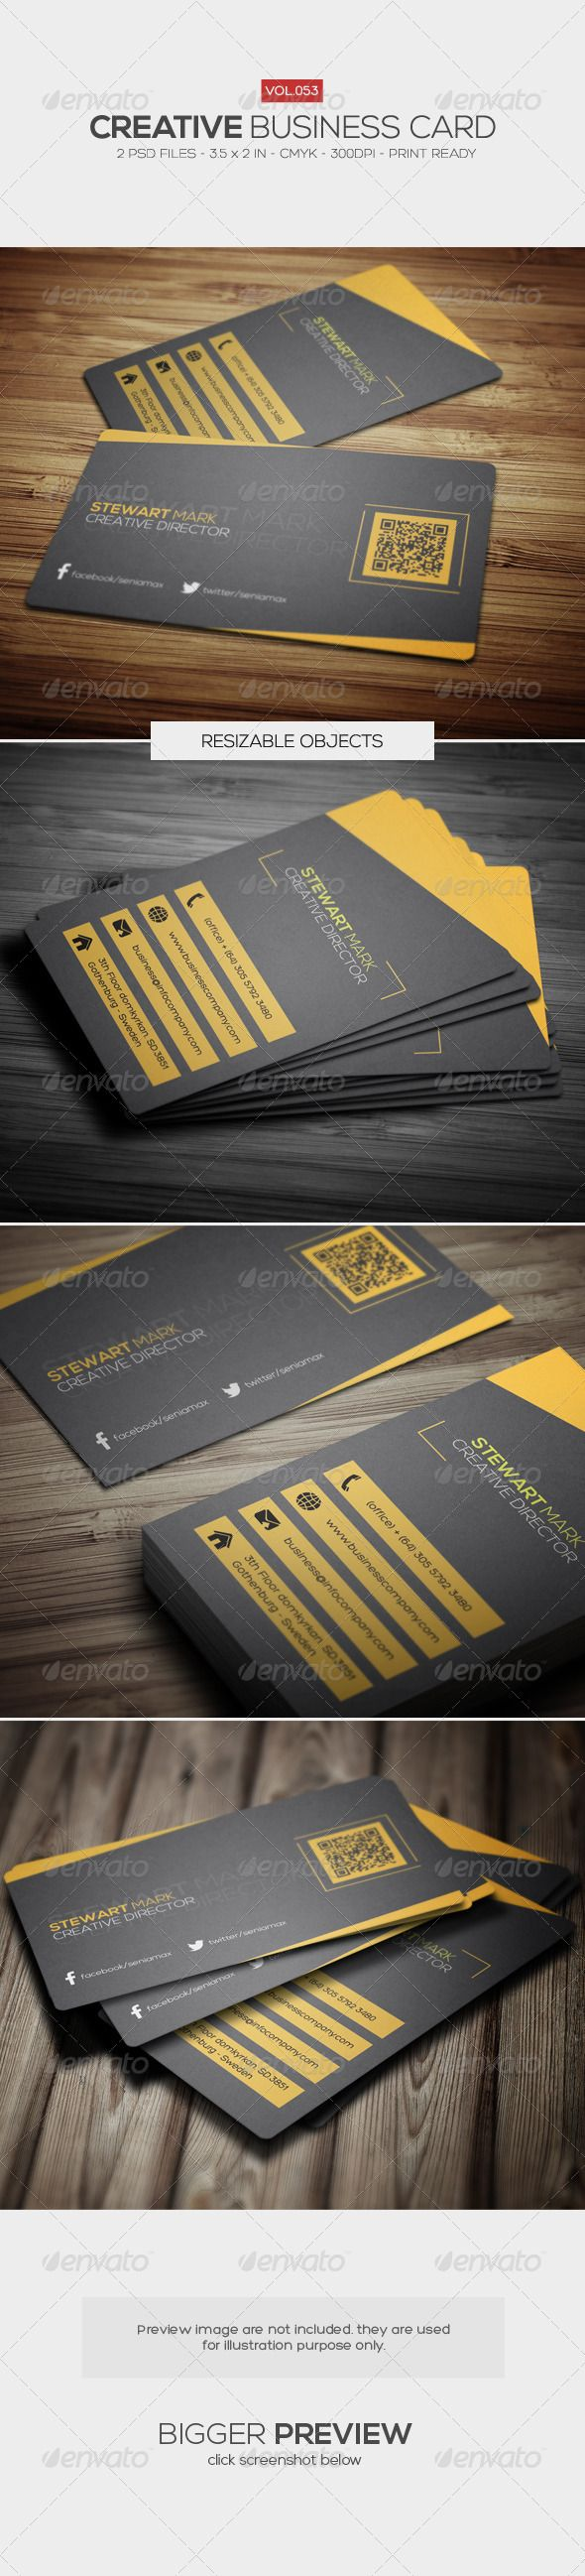 Creative Business Card 053   Business company, Business cards and ...